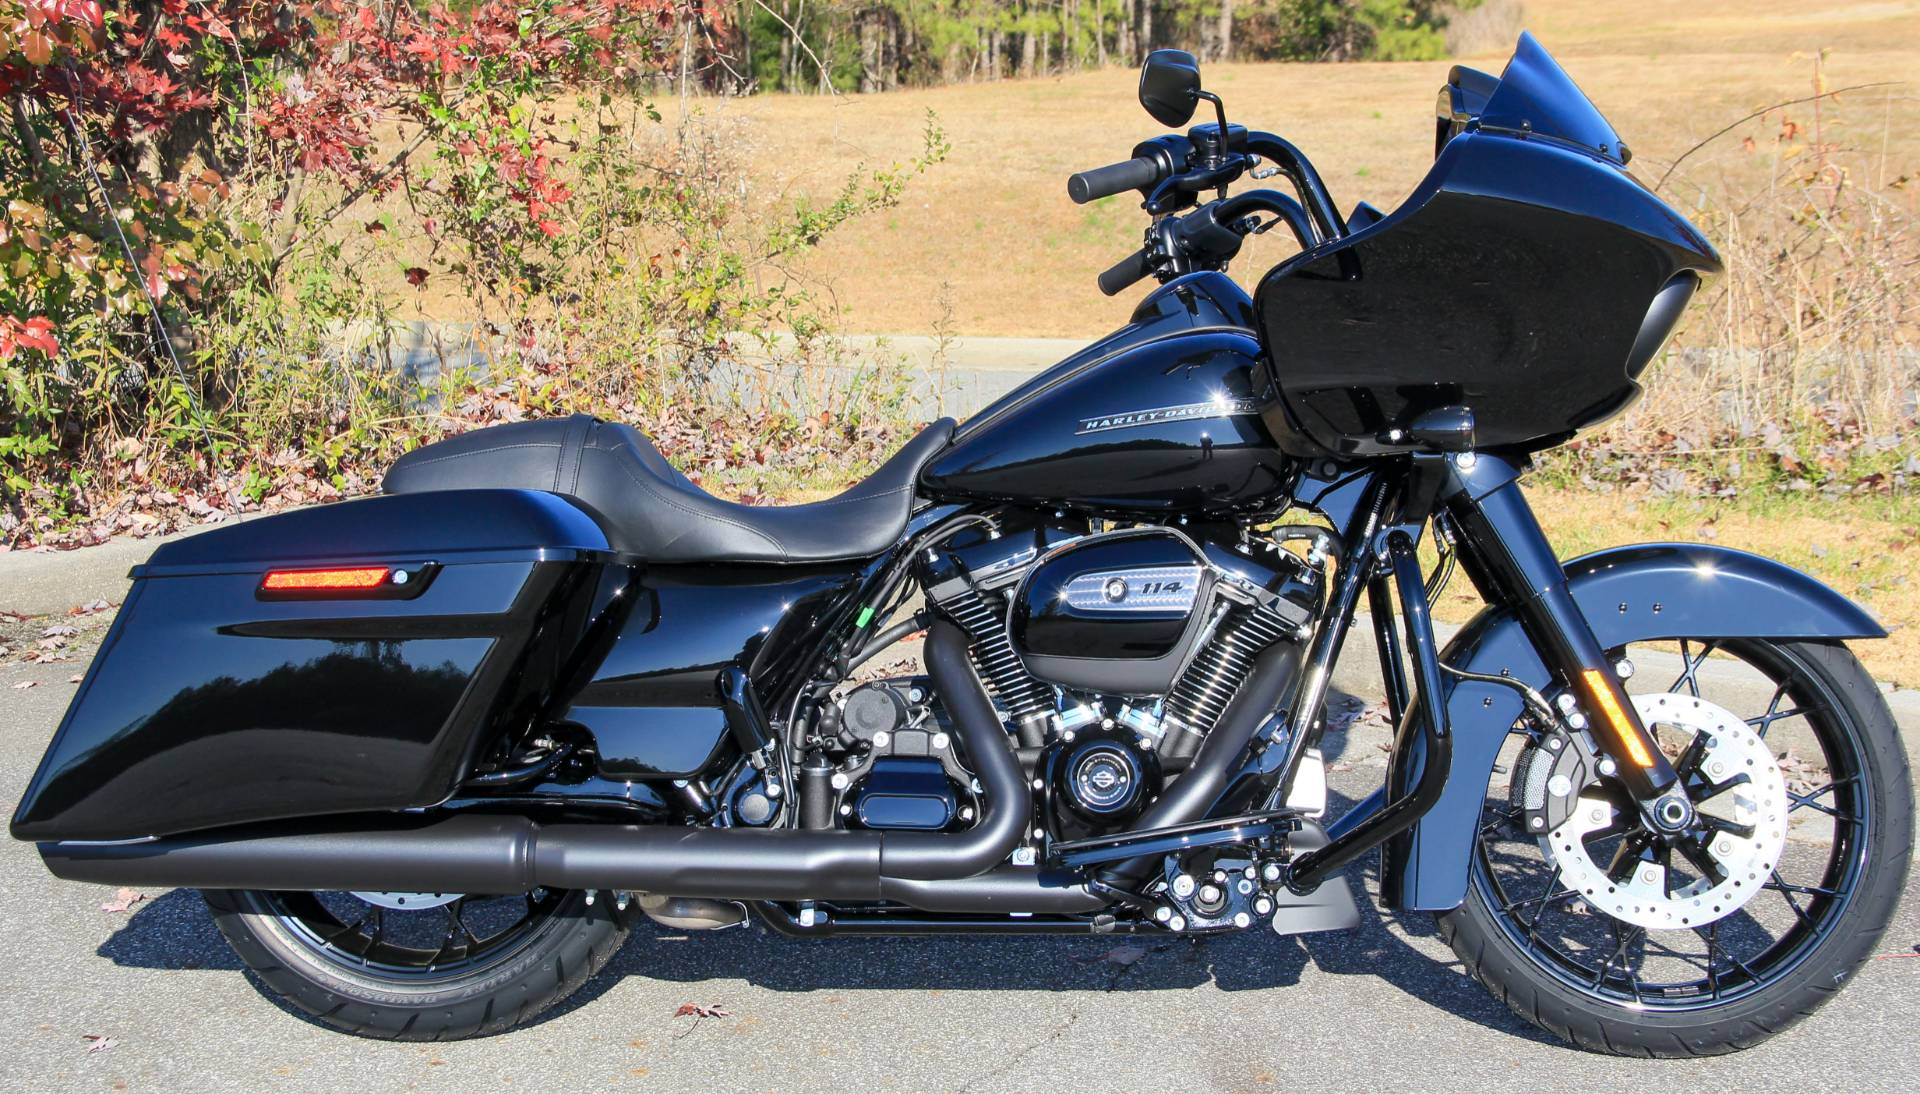 2020 Harley-Davidson Road Glide Special in Cartersville, Georgia - Photo 2